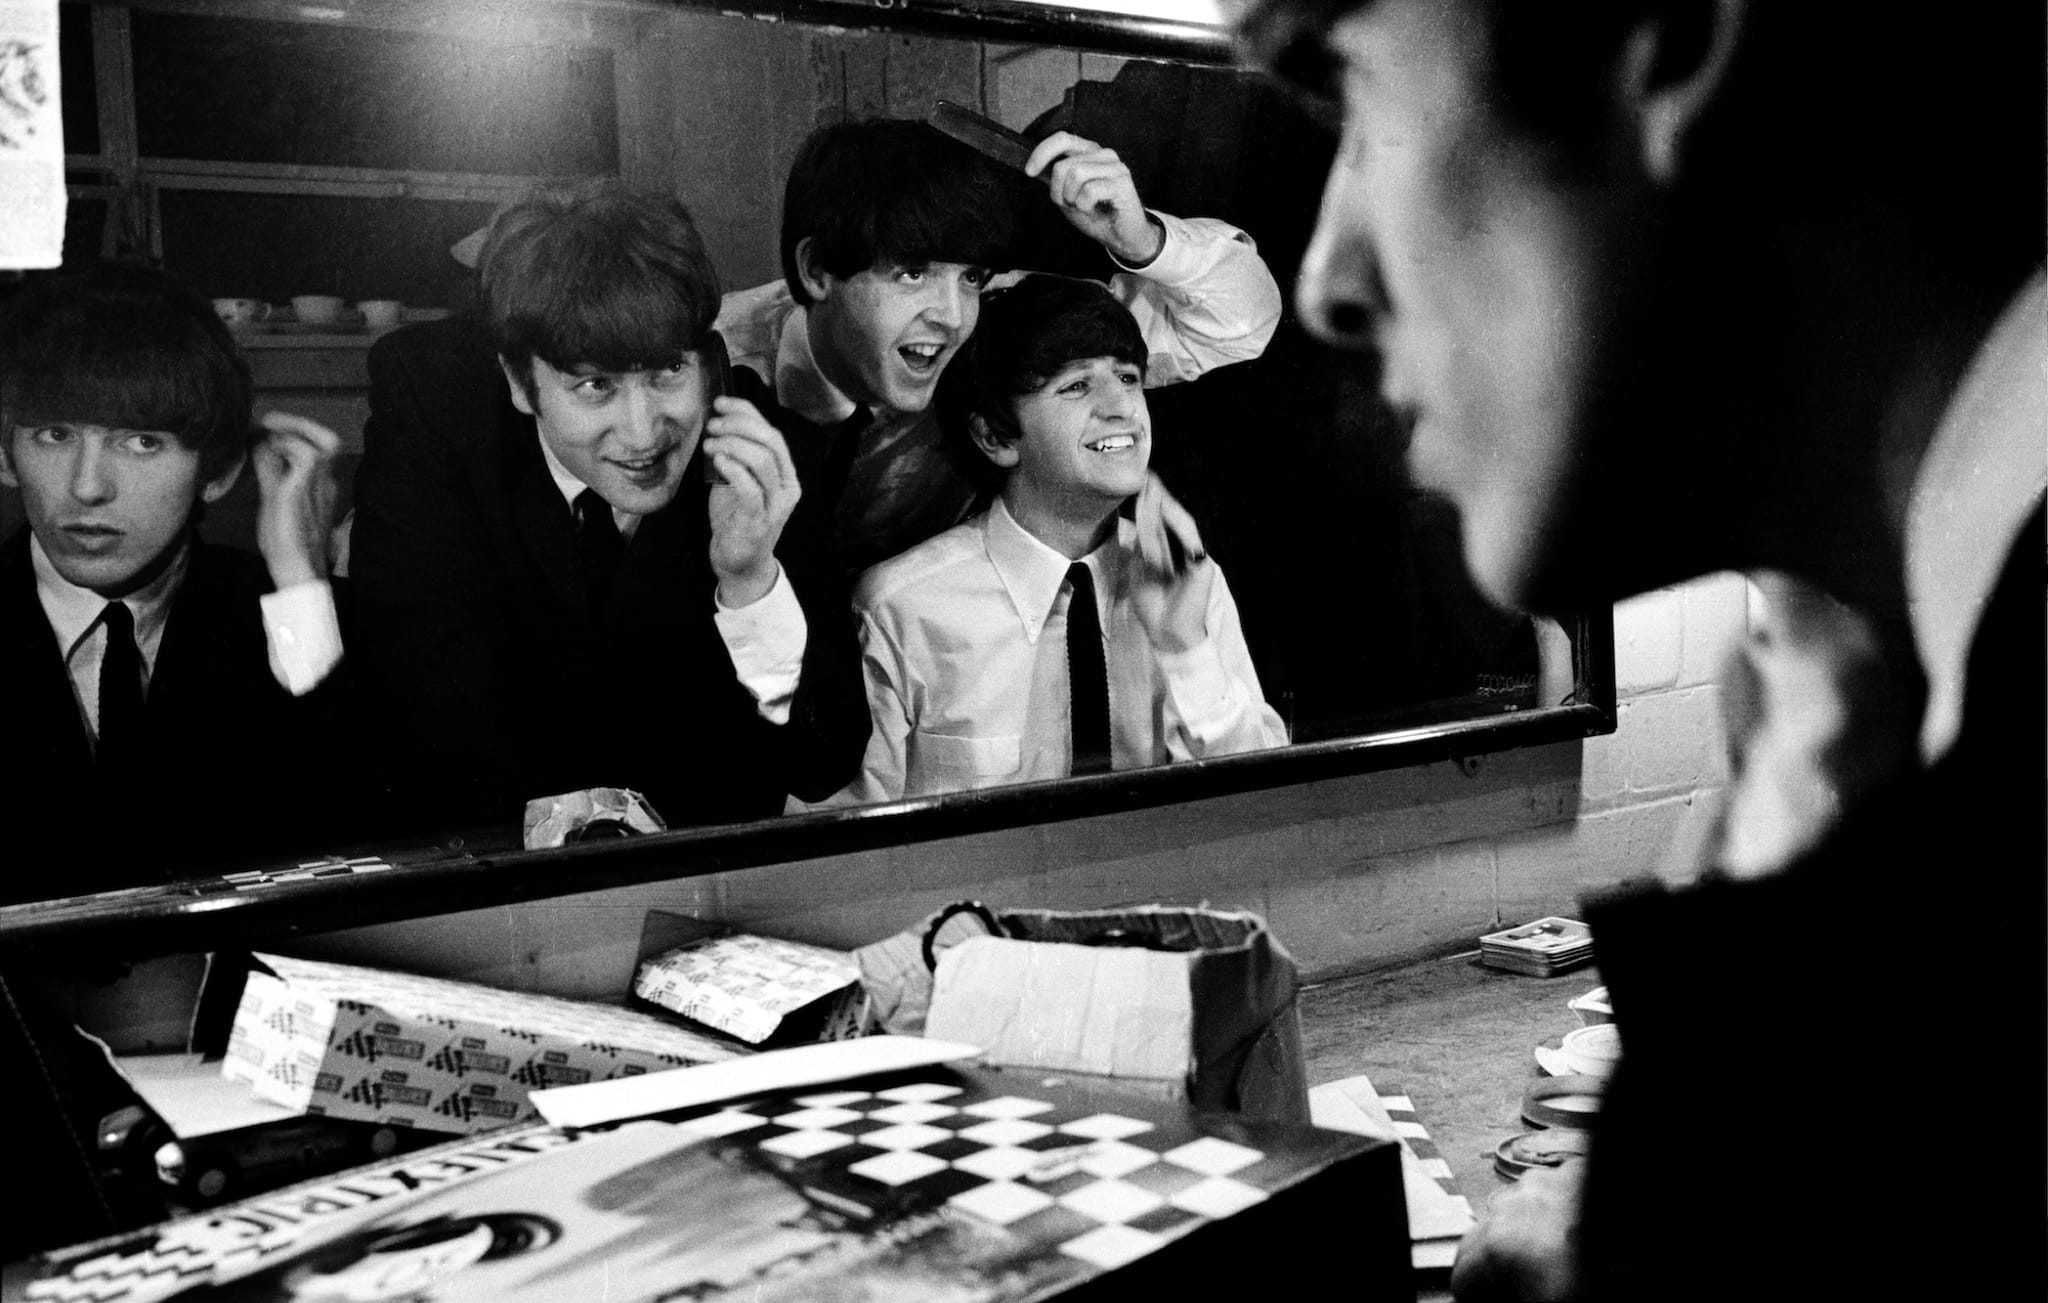 the-beatles-eight-days-a-week-image-1